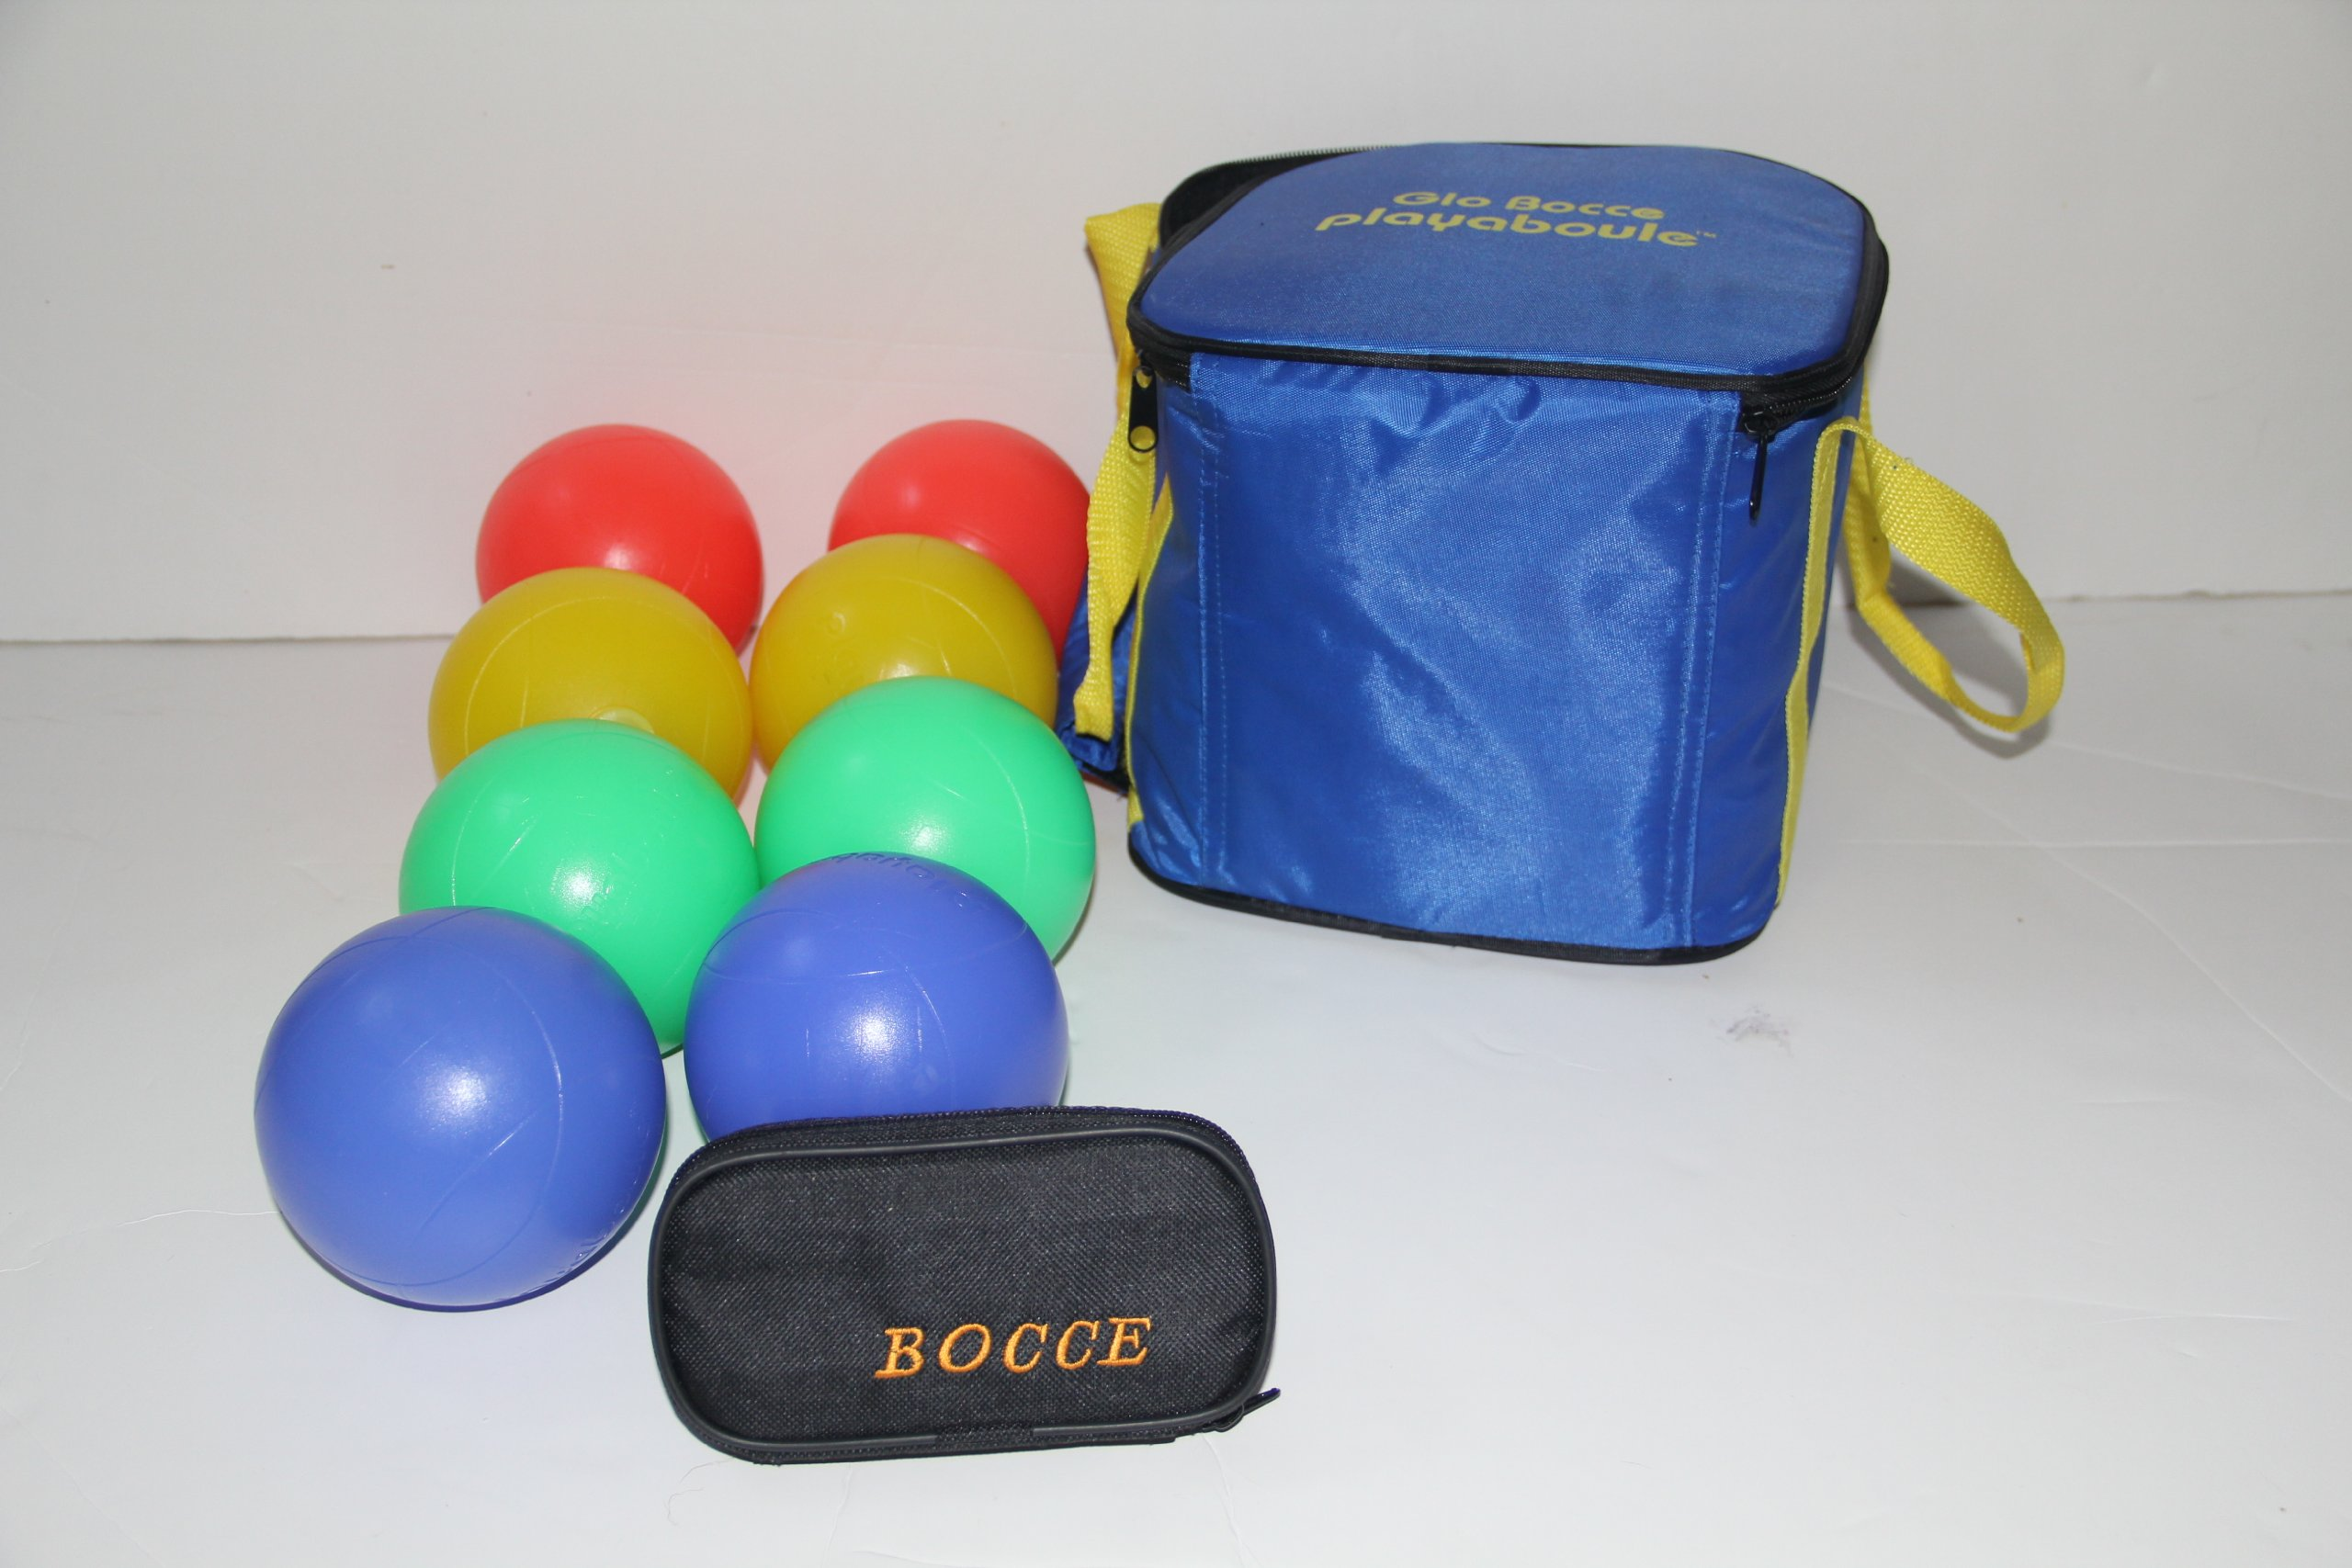 Bocce package - Glow in Dark Light Up set and 33mm Mini Bocce Set [Misc.]